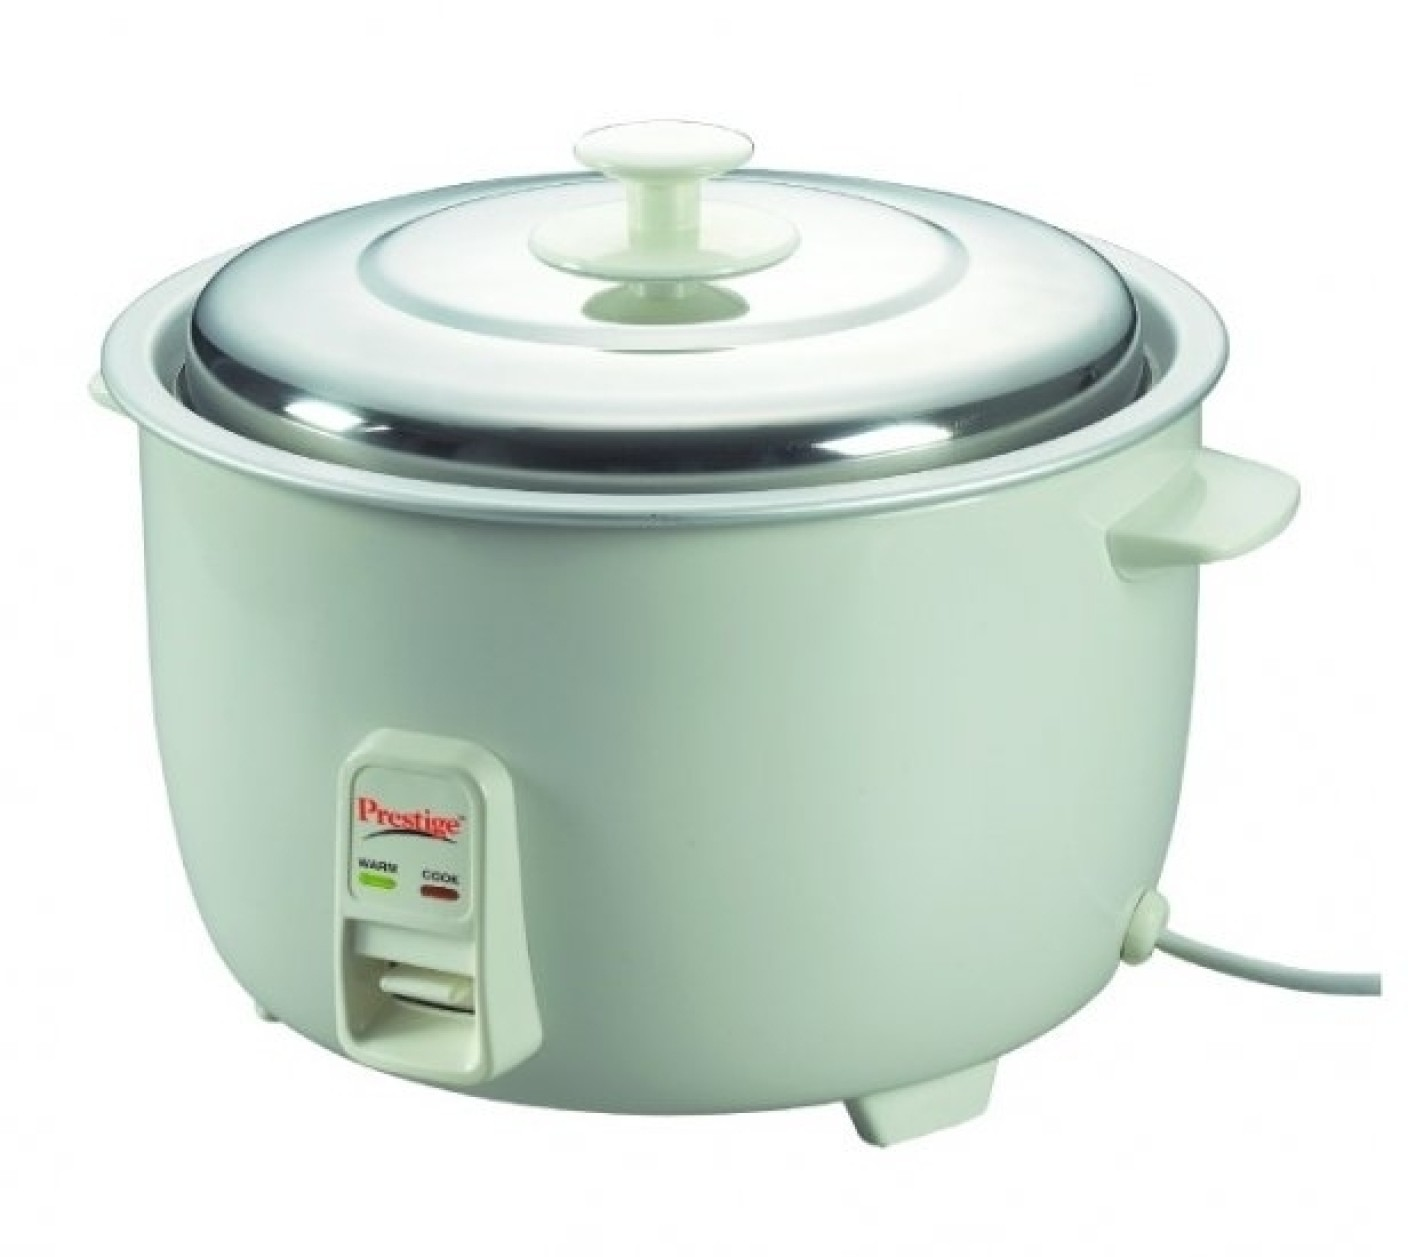 Prestige PRWO 4.2 Electric Rice Cooker with Steaming Feature Price ...